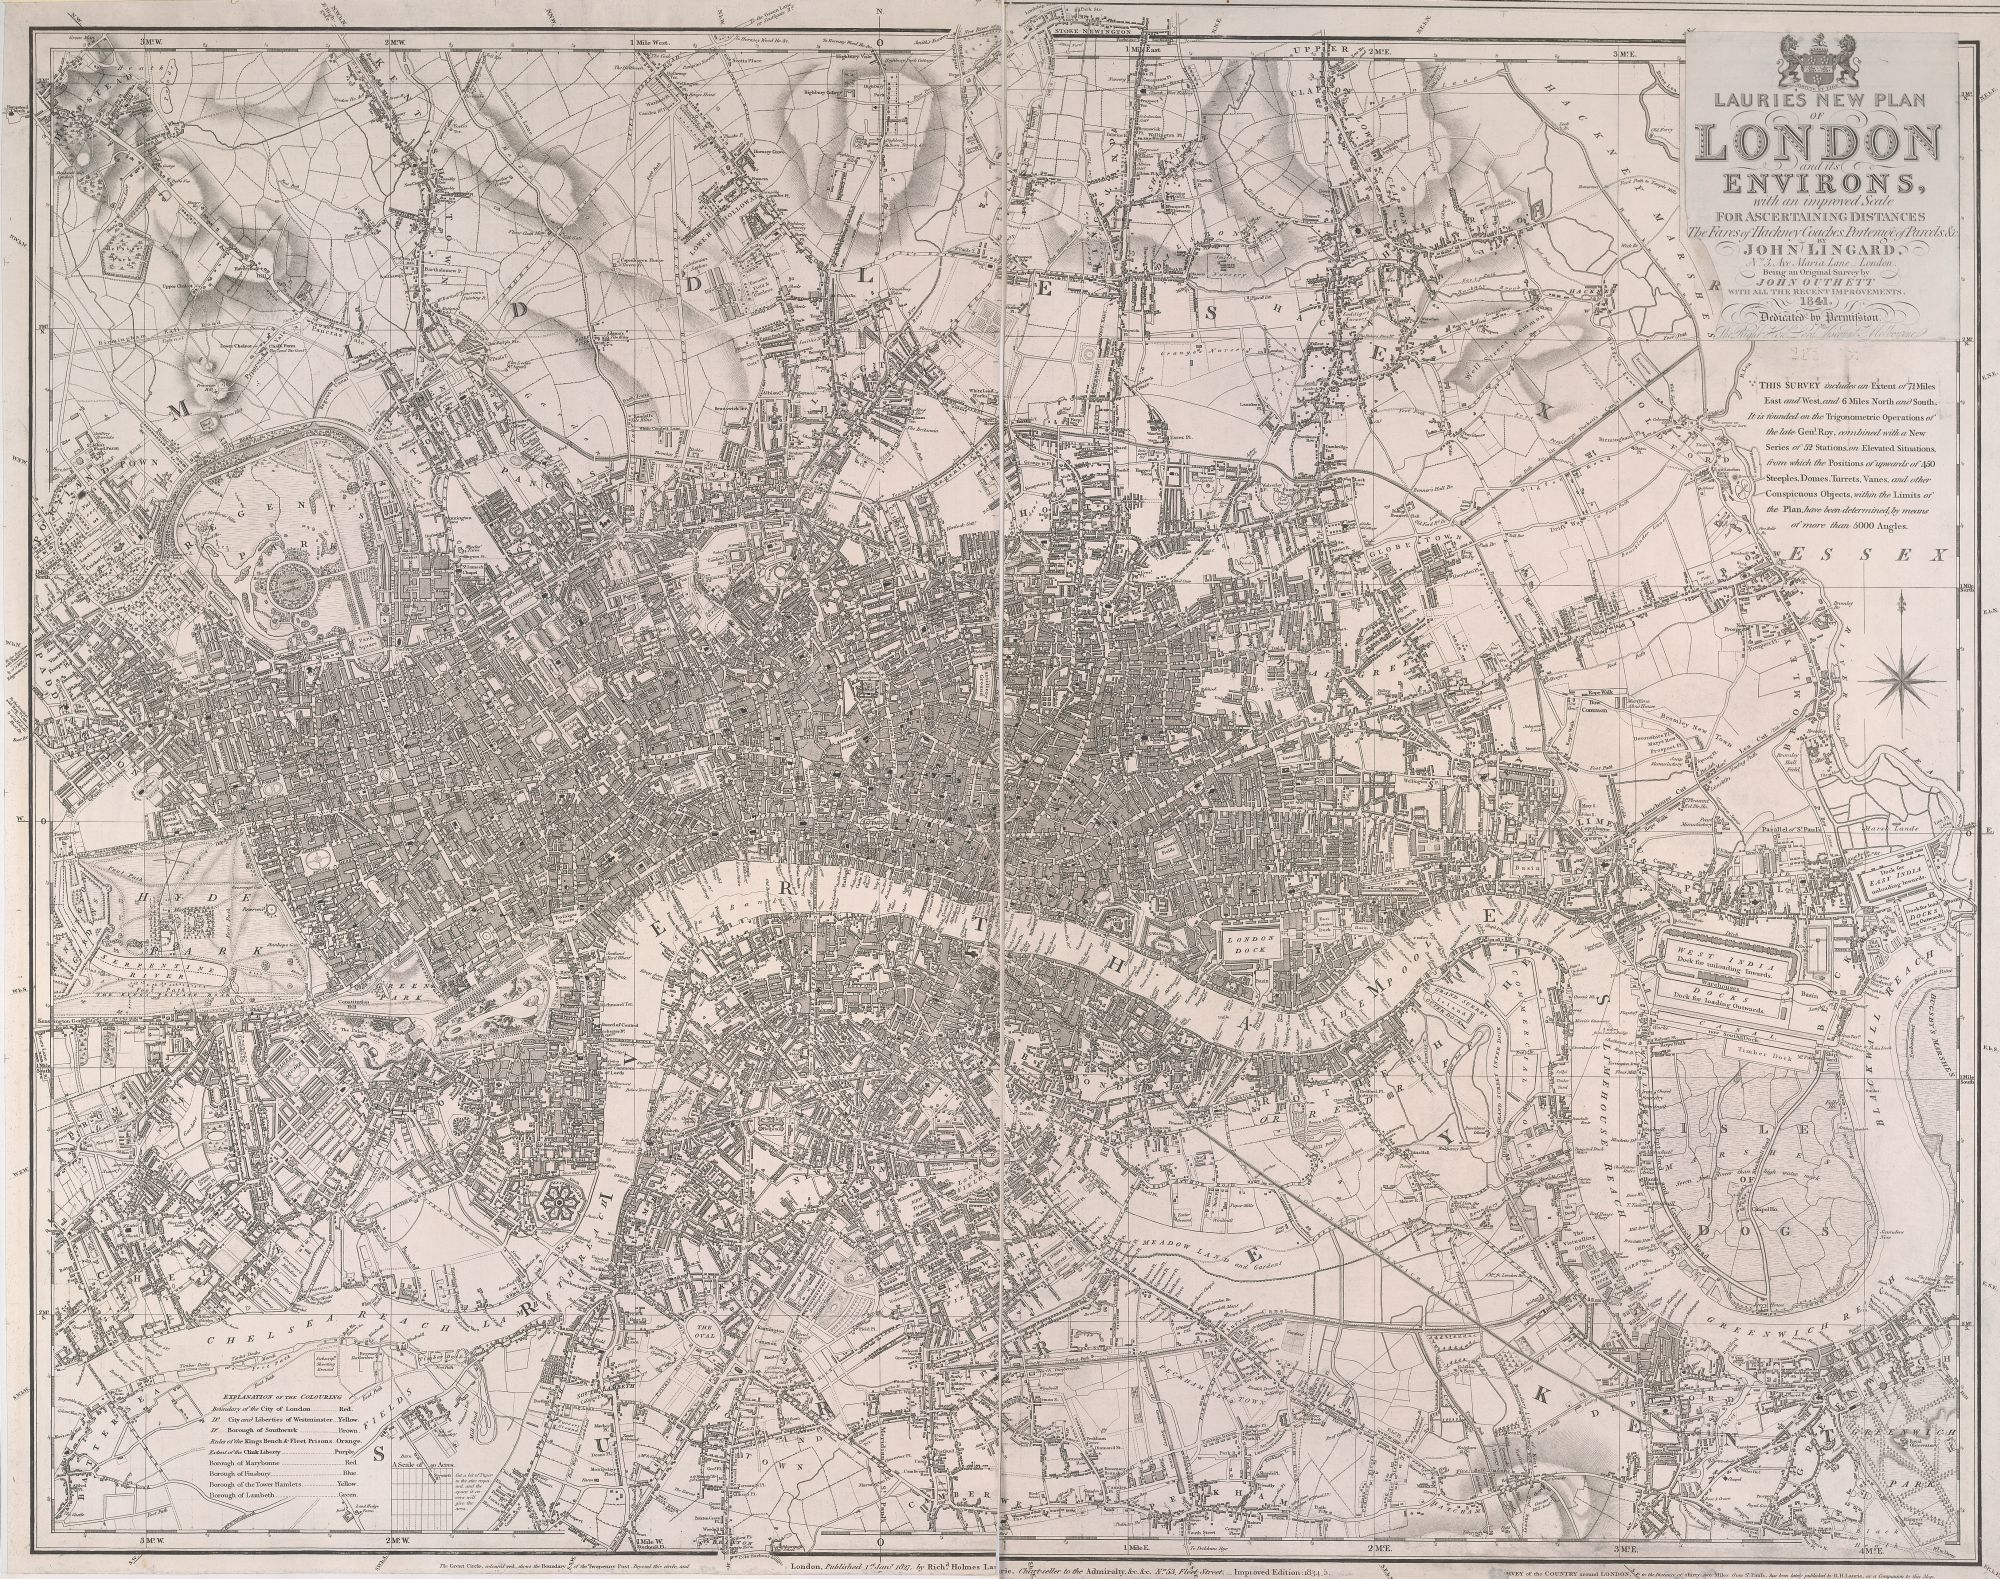 Richard Holmes Laurie, Laurie's new plan of London and its environs, (London: R. H. Laurie, 1834-5), copperplate engraving British Library Maps Crace Port. 7.239